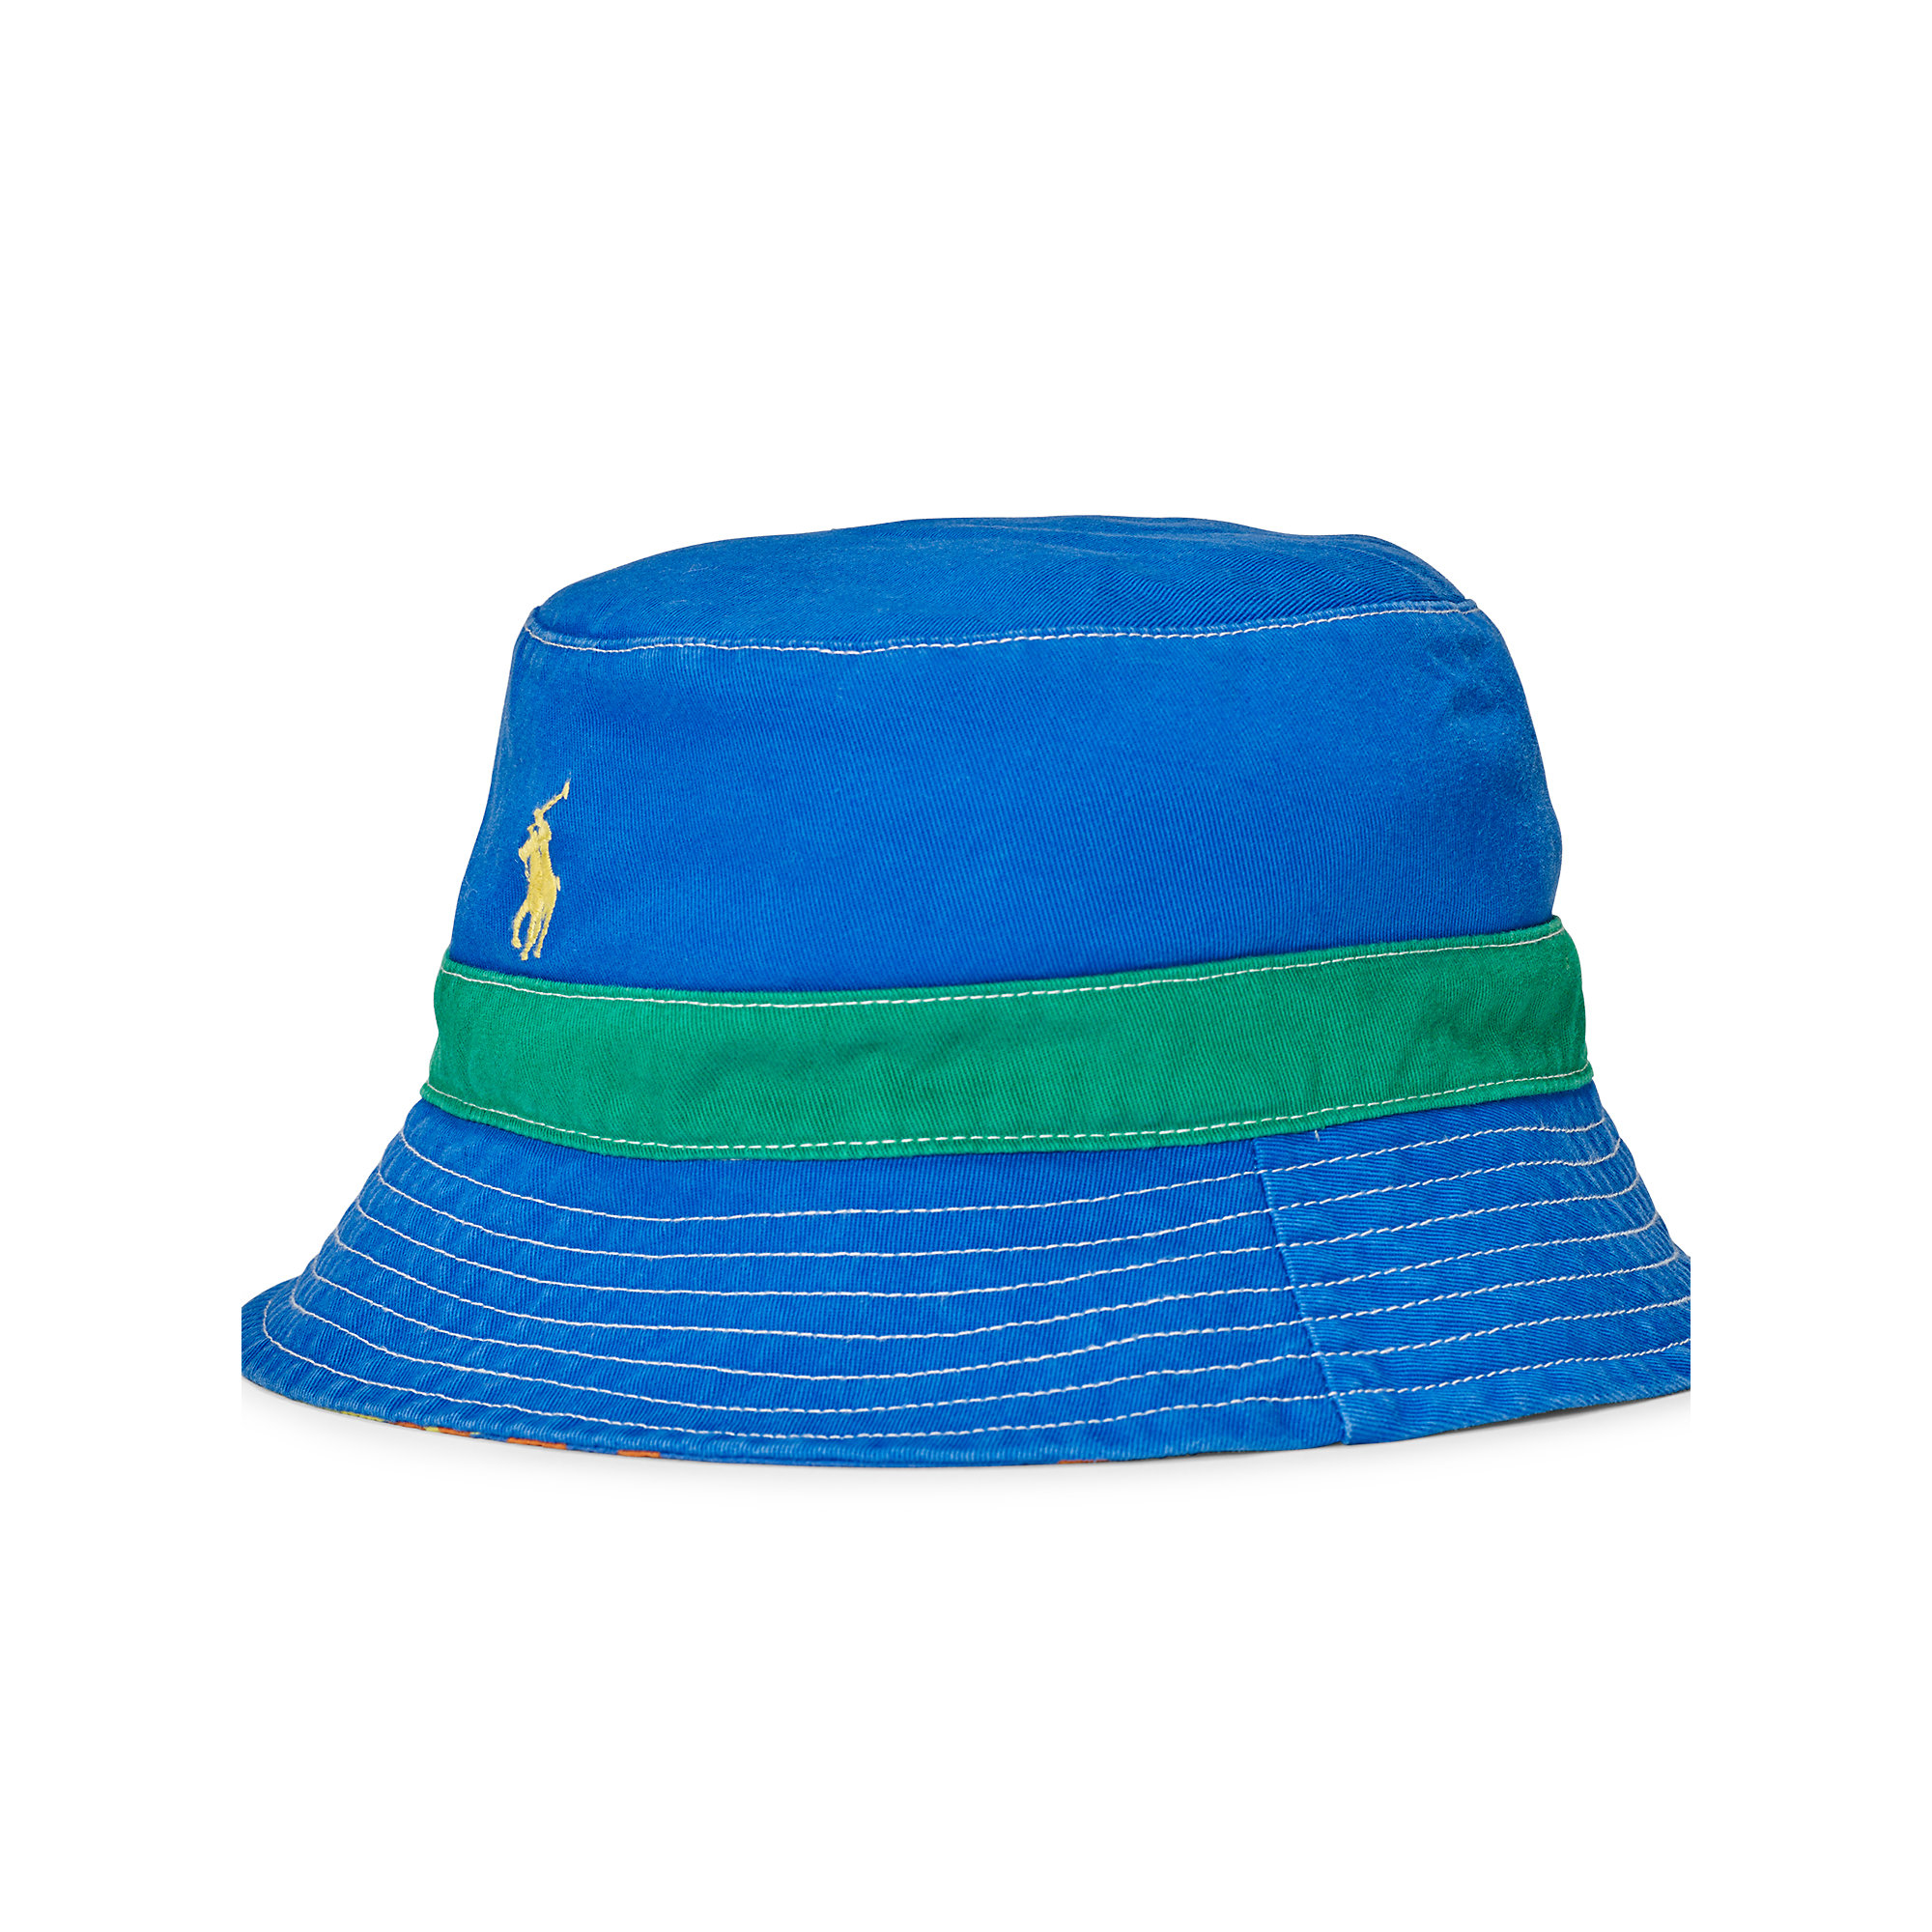 c8a02e56 Polo Ralph Lauren Reversible Twill Bucket Hat for Men - Lyst